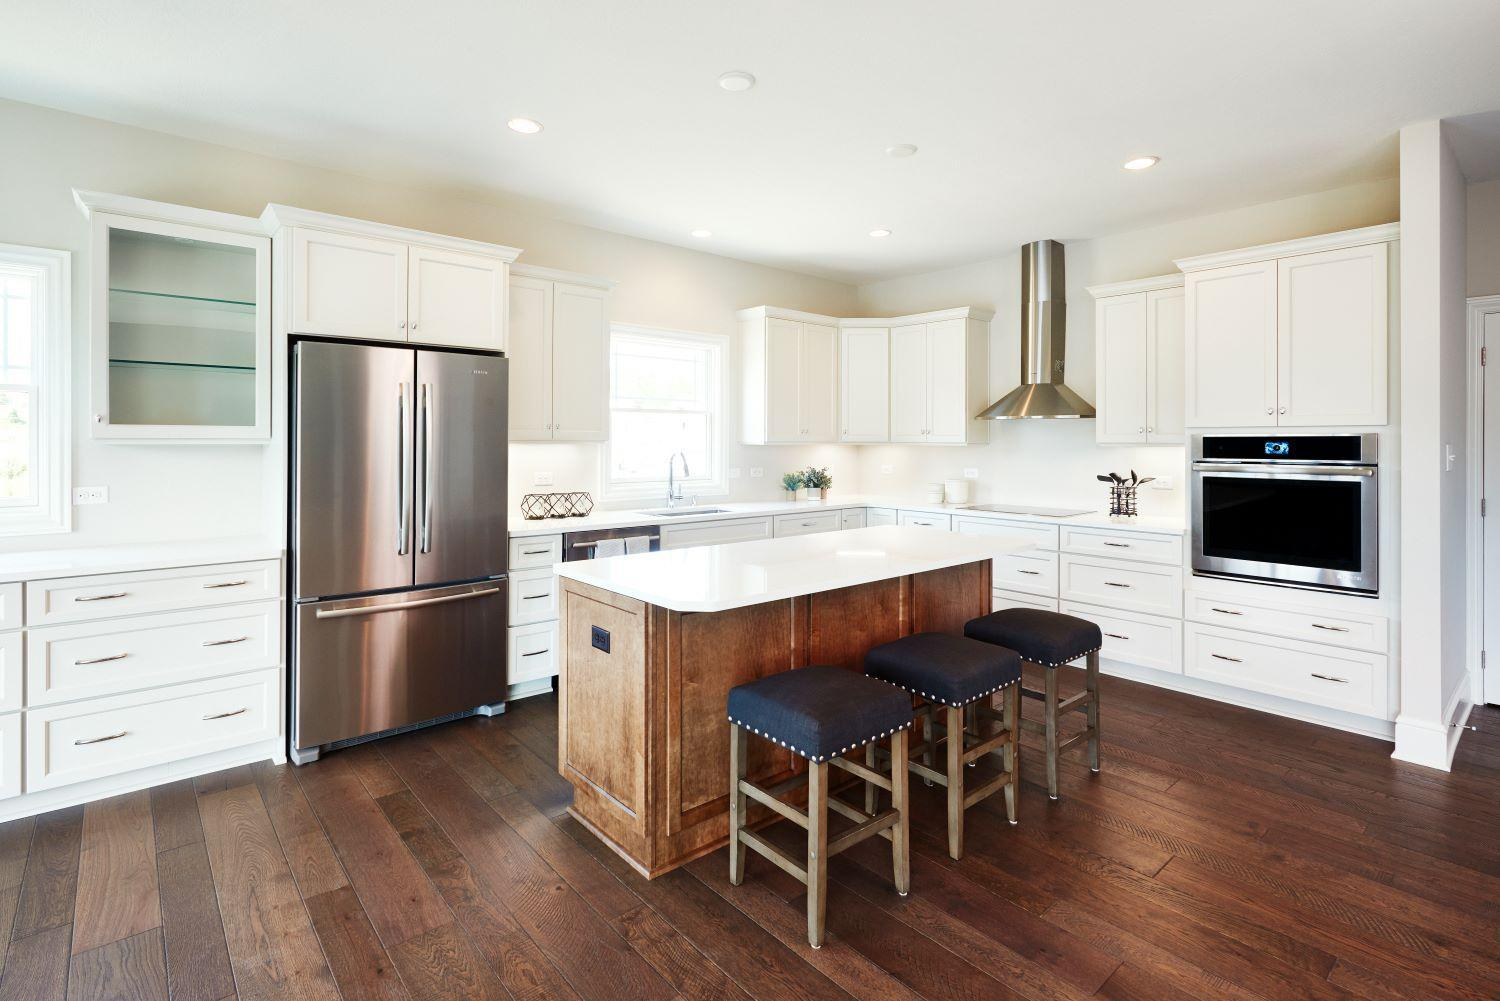 Kitchen featured in the Baywood By Eddy Homes in Pittsburgh, PA